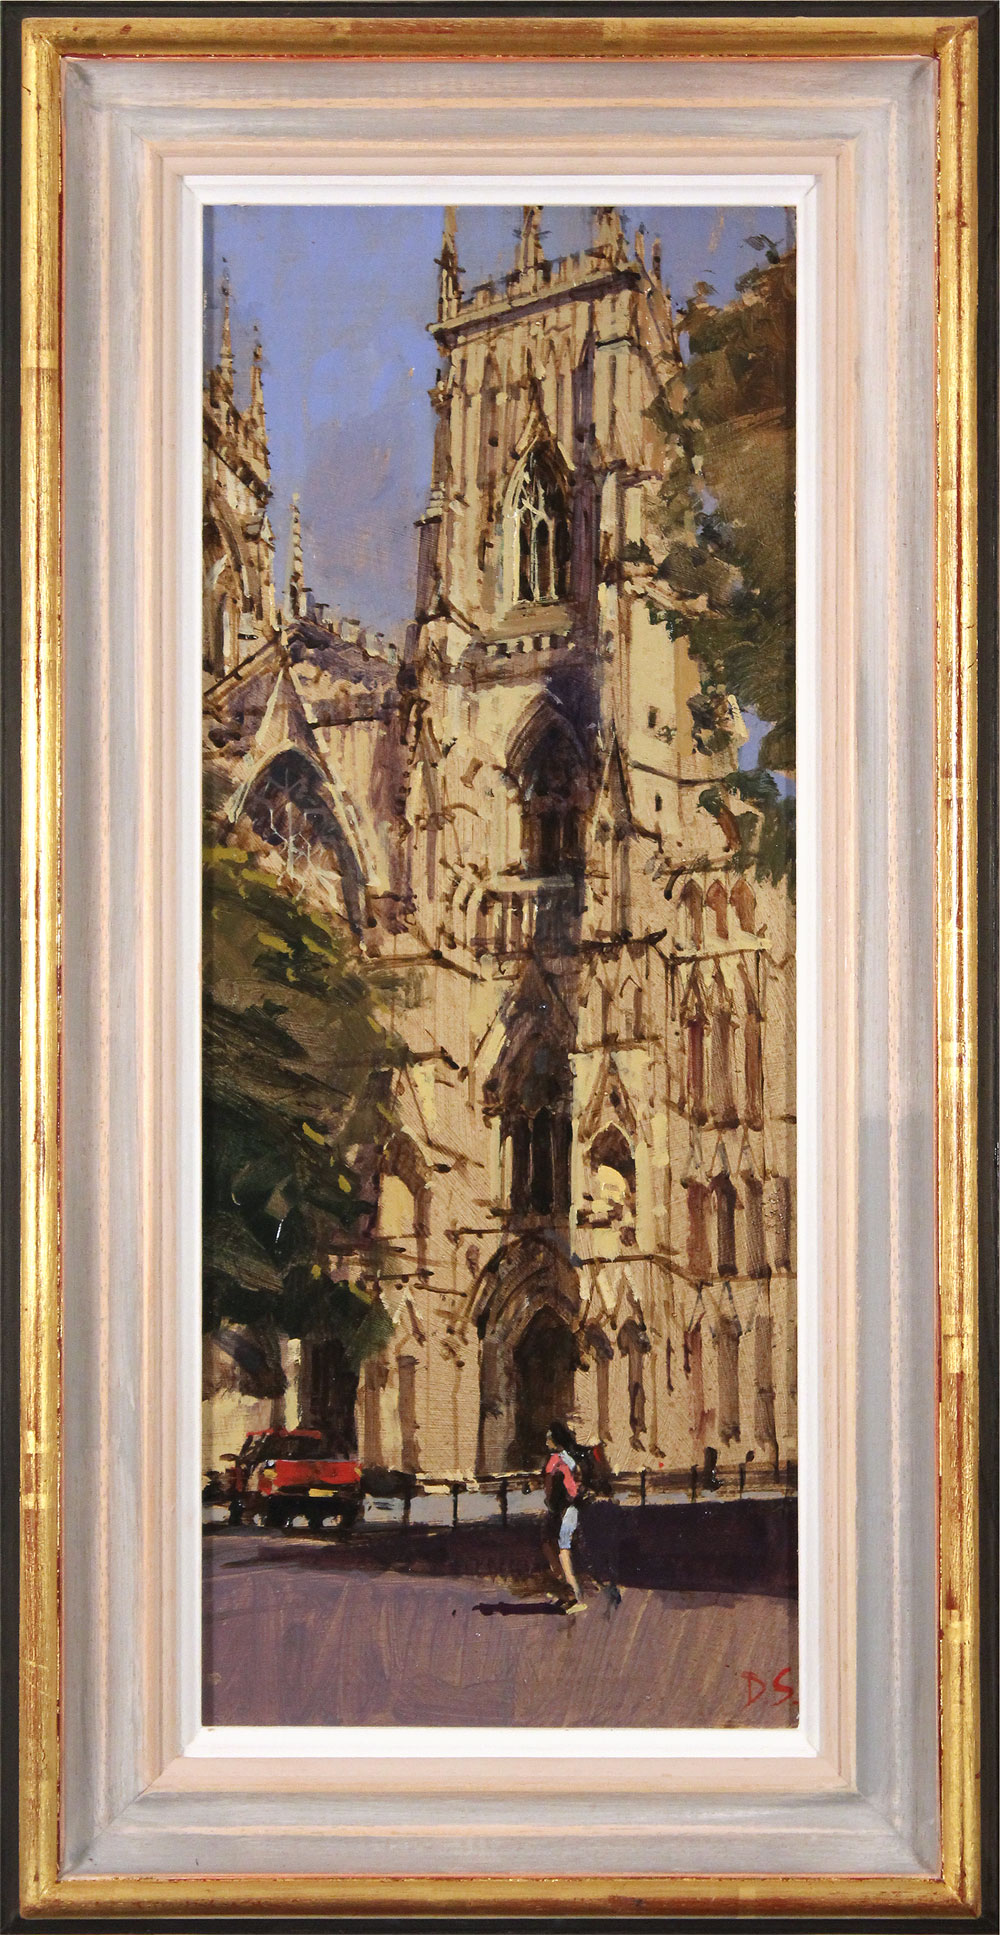 David Sawyer, RBA, Original oil painting on panel, The Red Truck, York Minster, click to enlarge